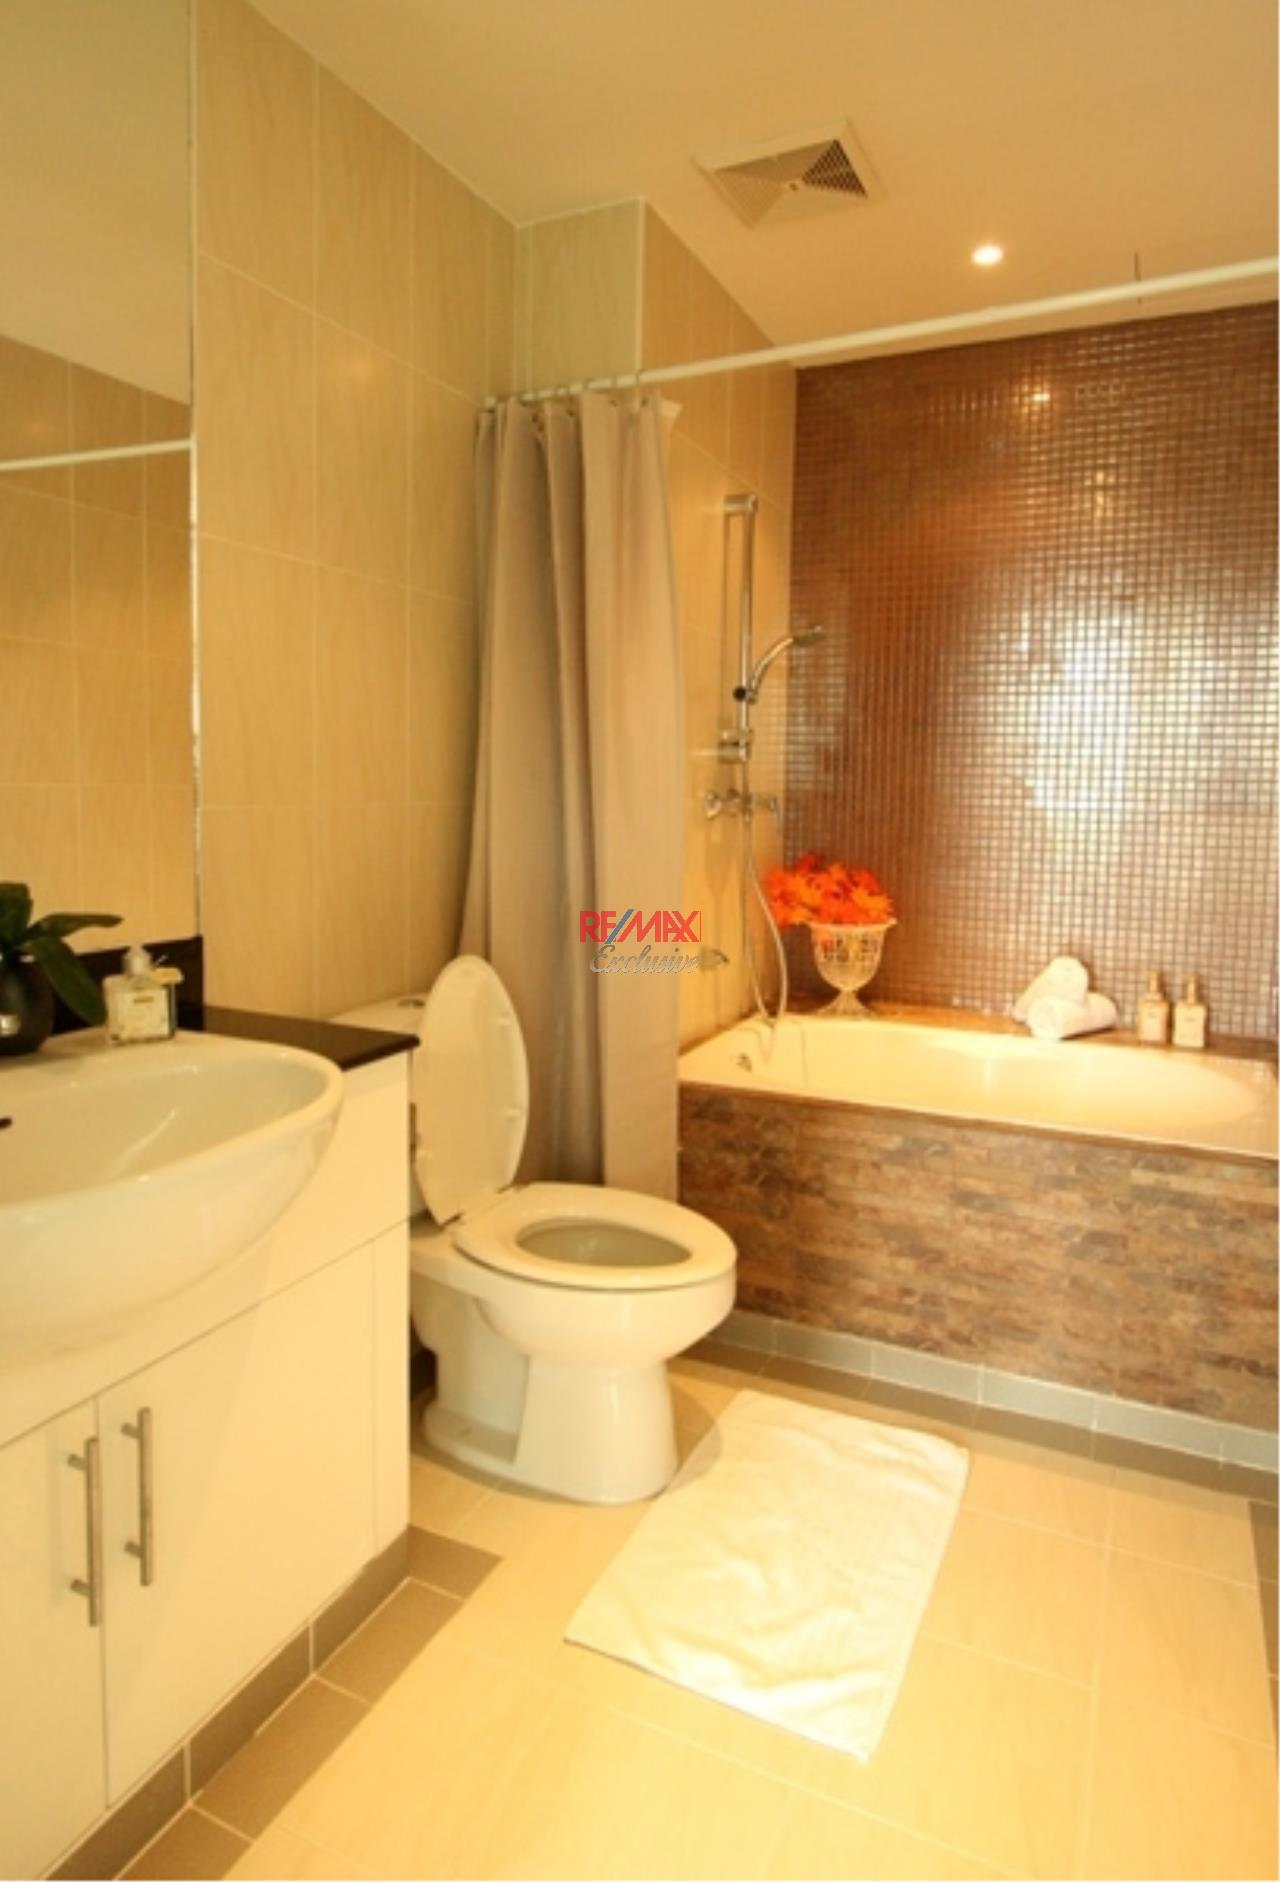 RE/MAX Exclusive Agency's 49 Plus 2 Condo 2 Bedrooms 81 Sqm For Sale 8,800,000 THB 8